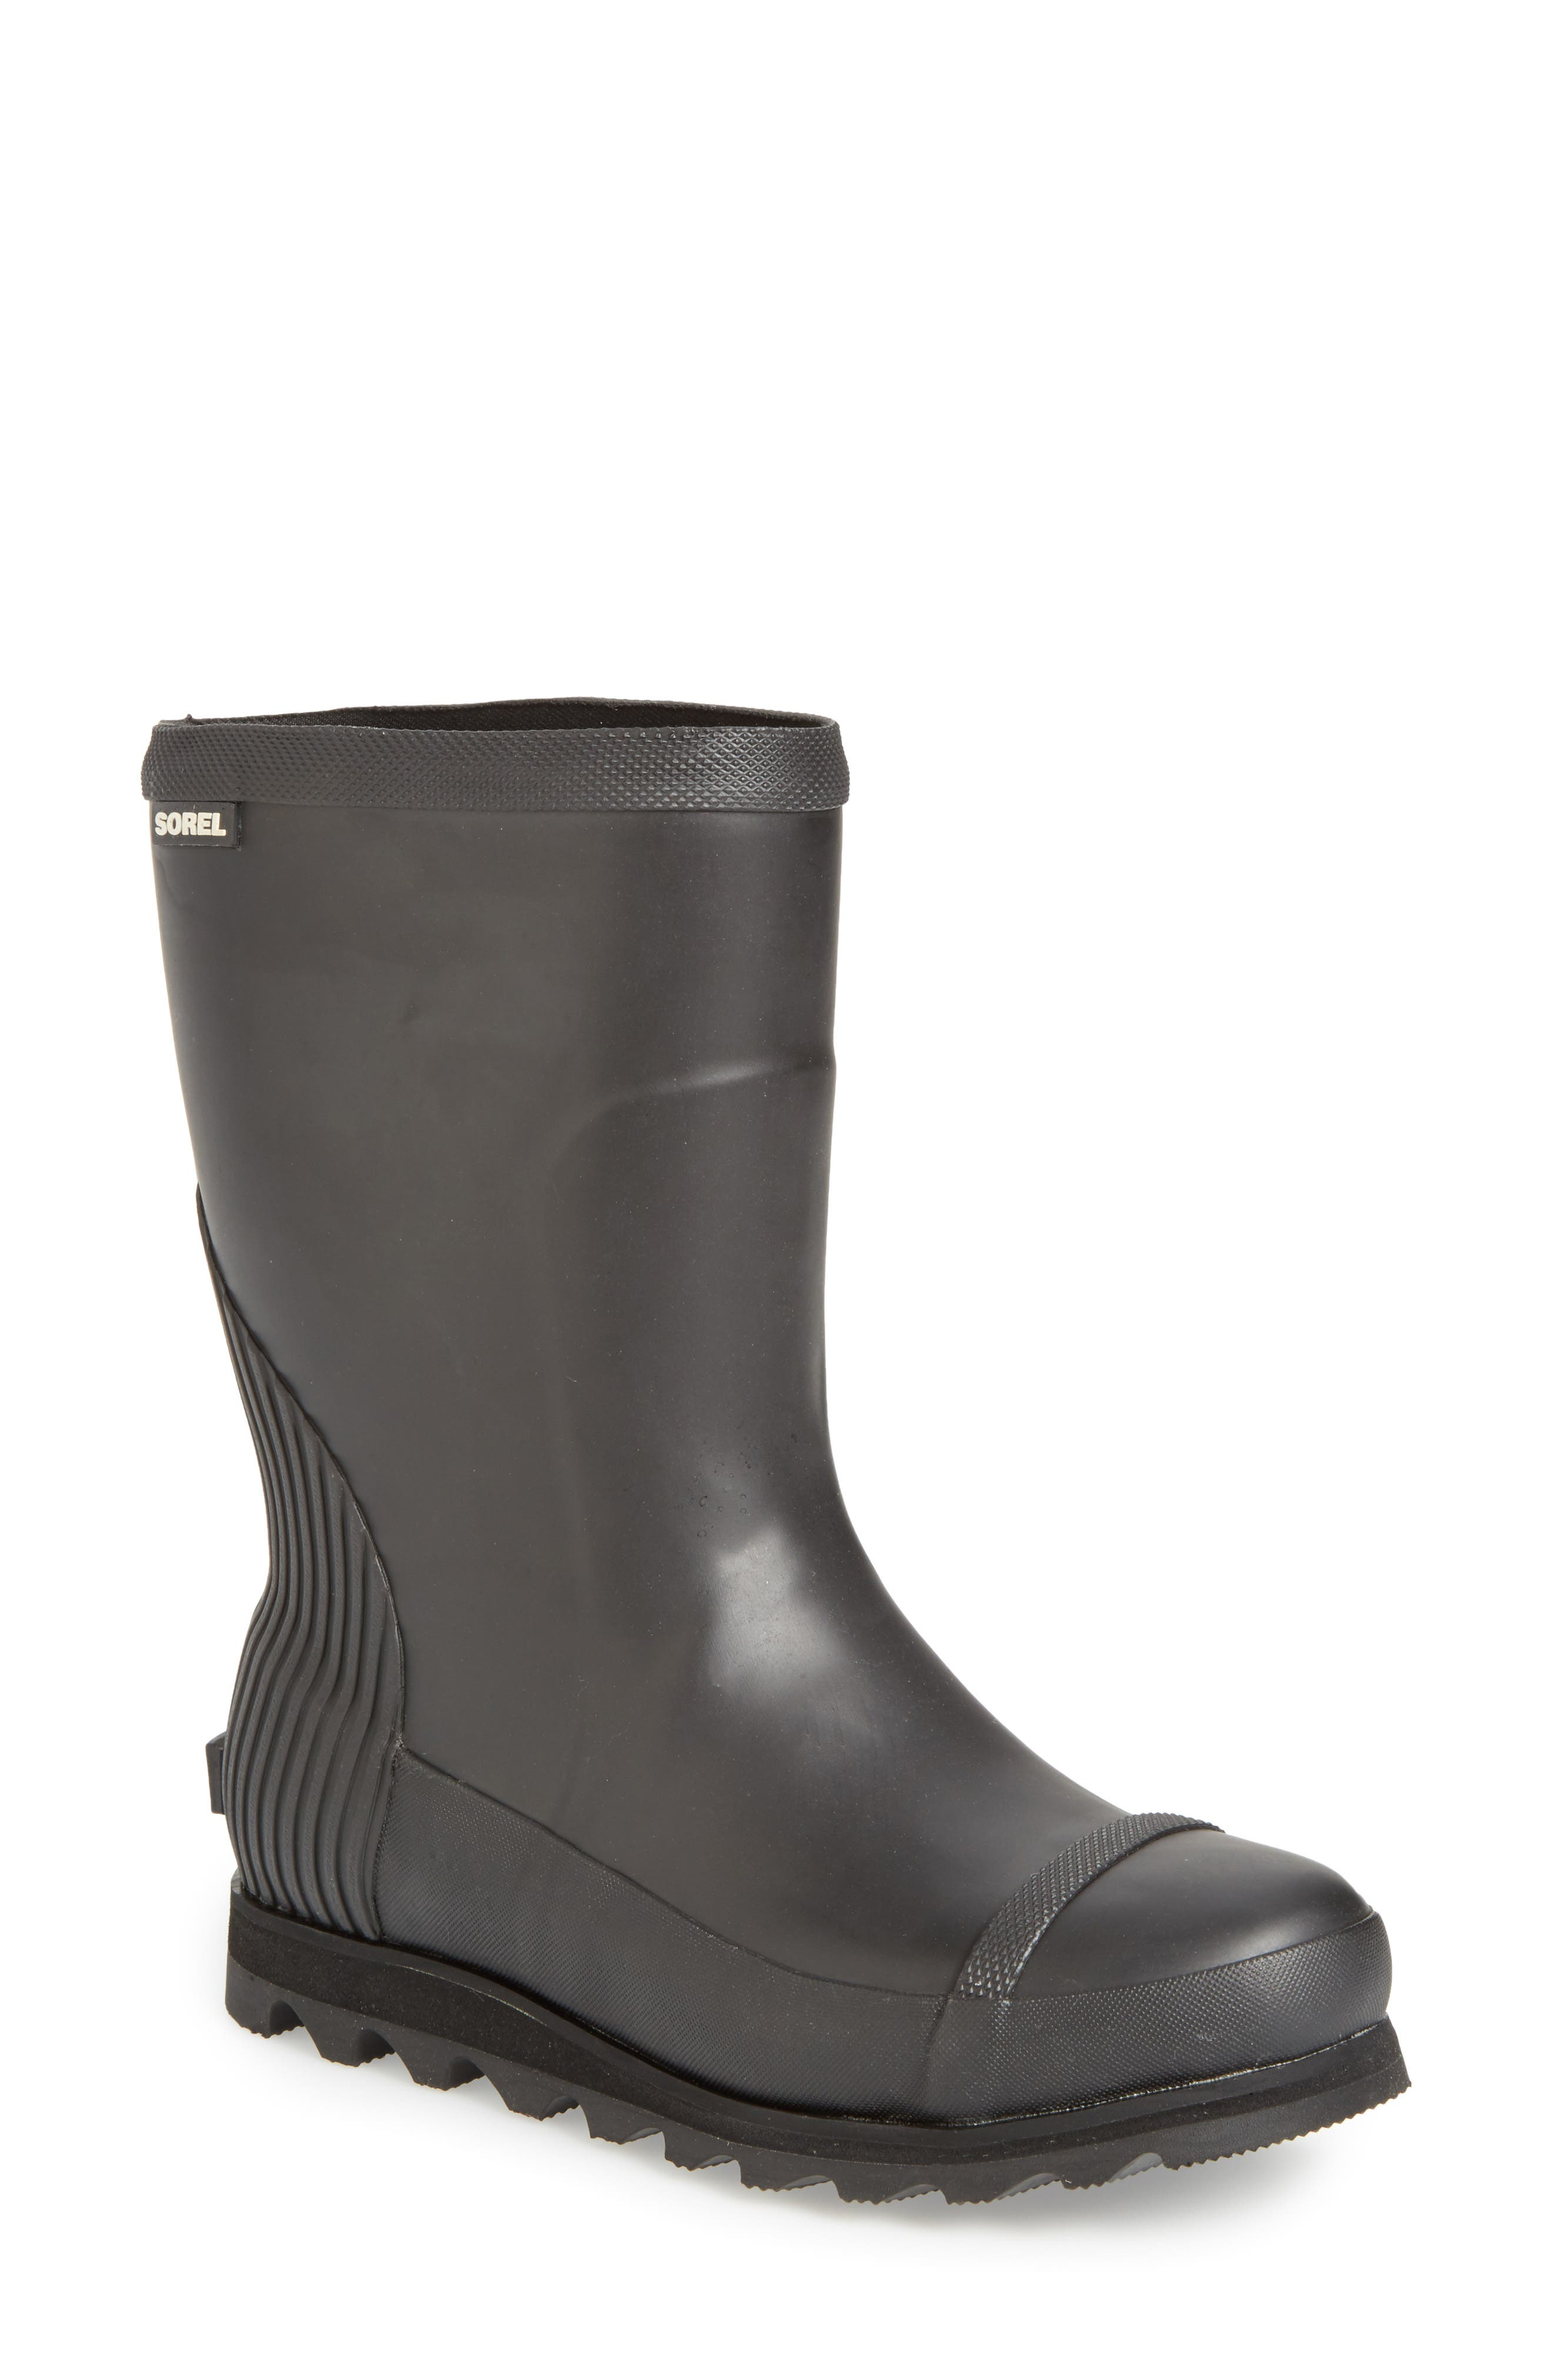 Joan Short Rain Boot,                             Main thumbnail 1, color,                             010